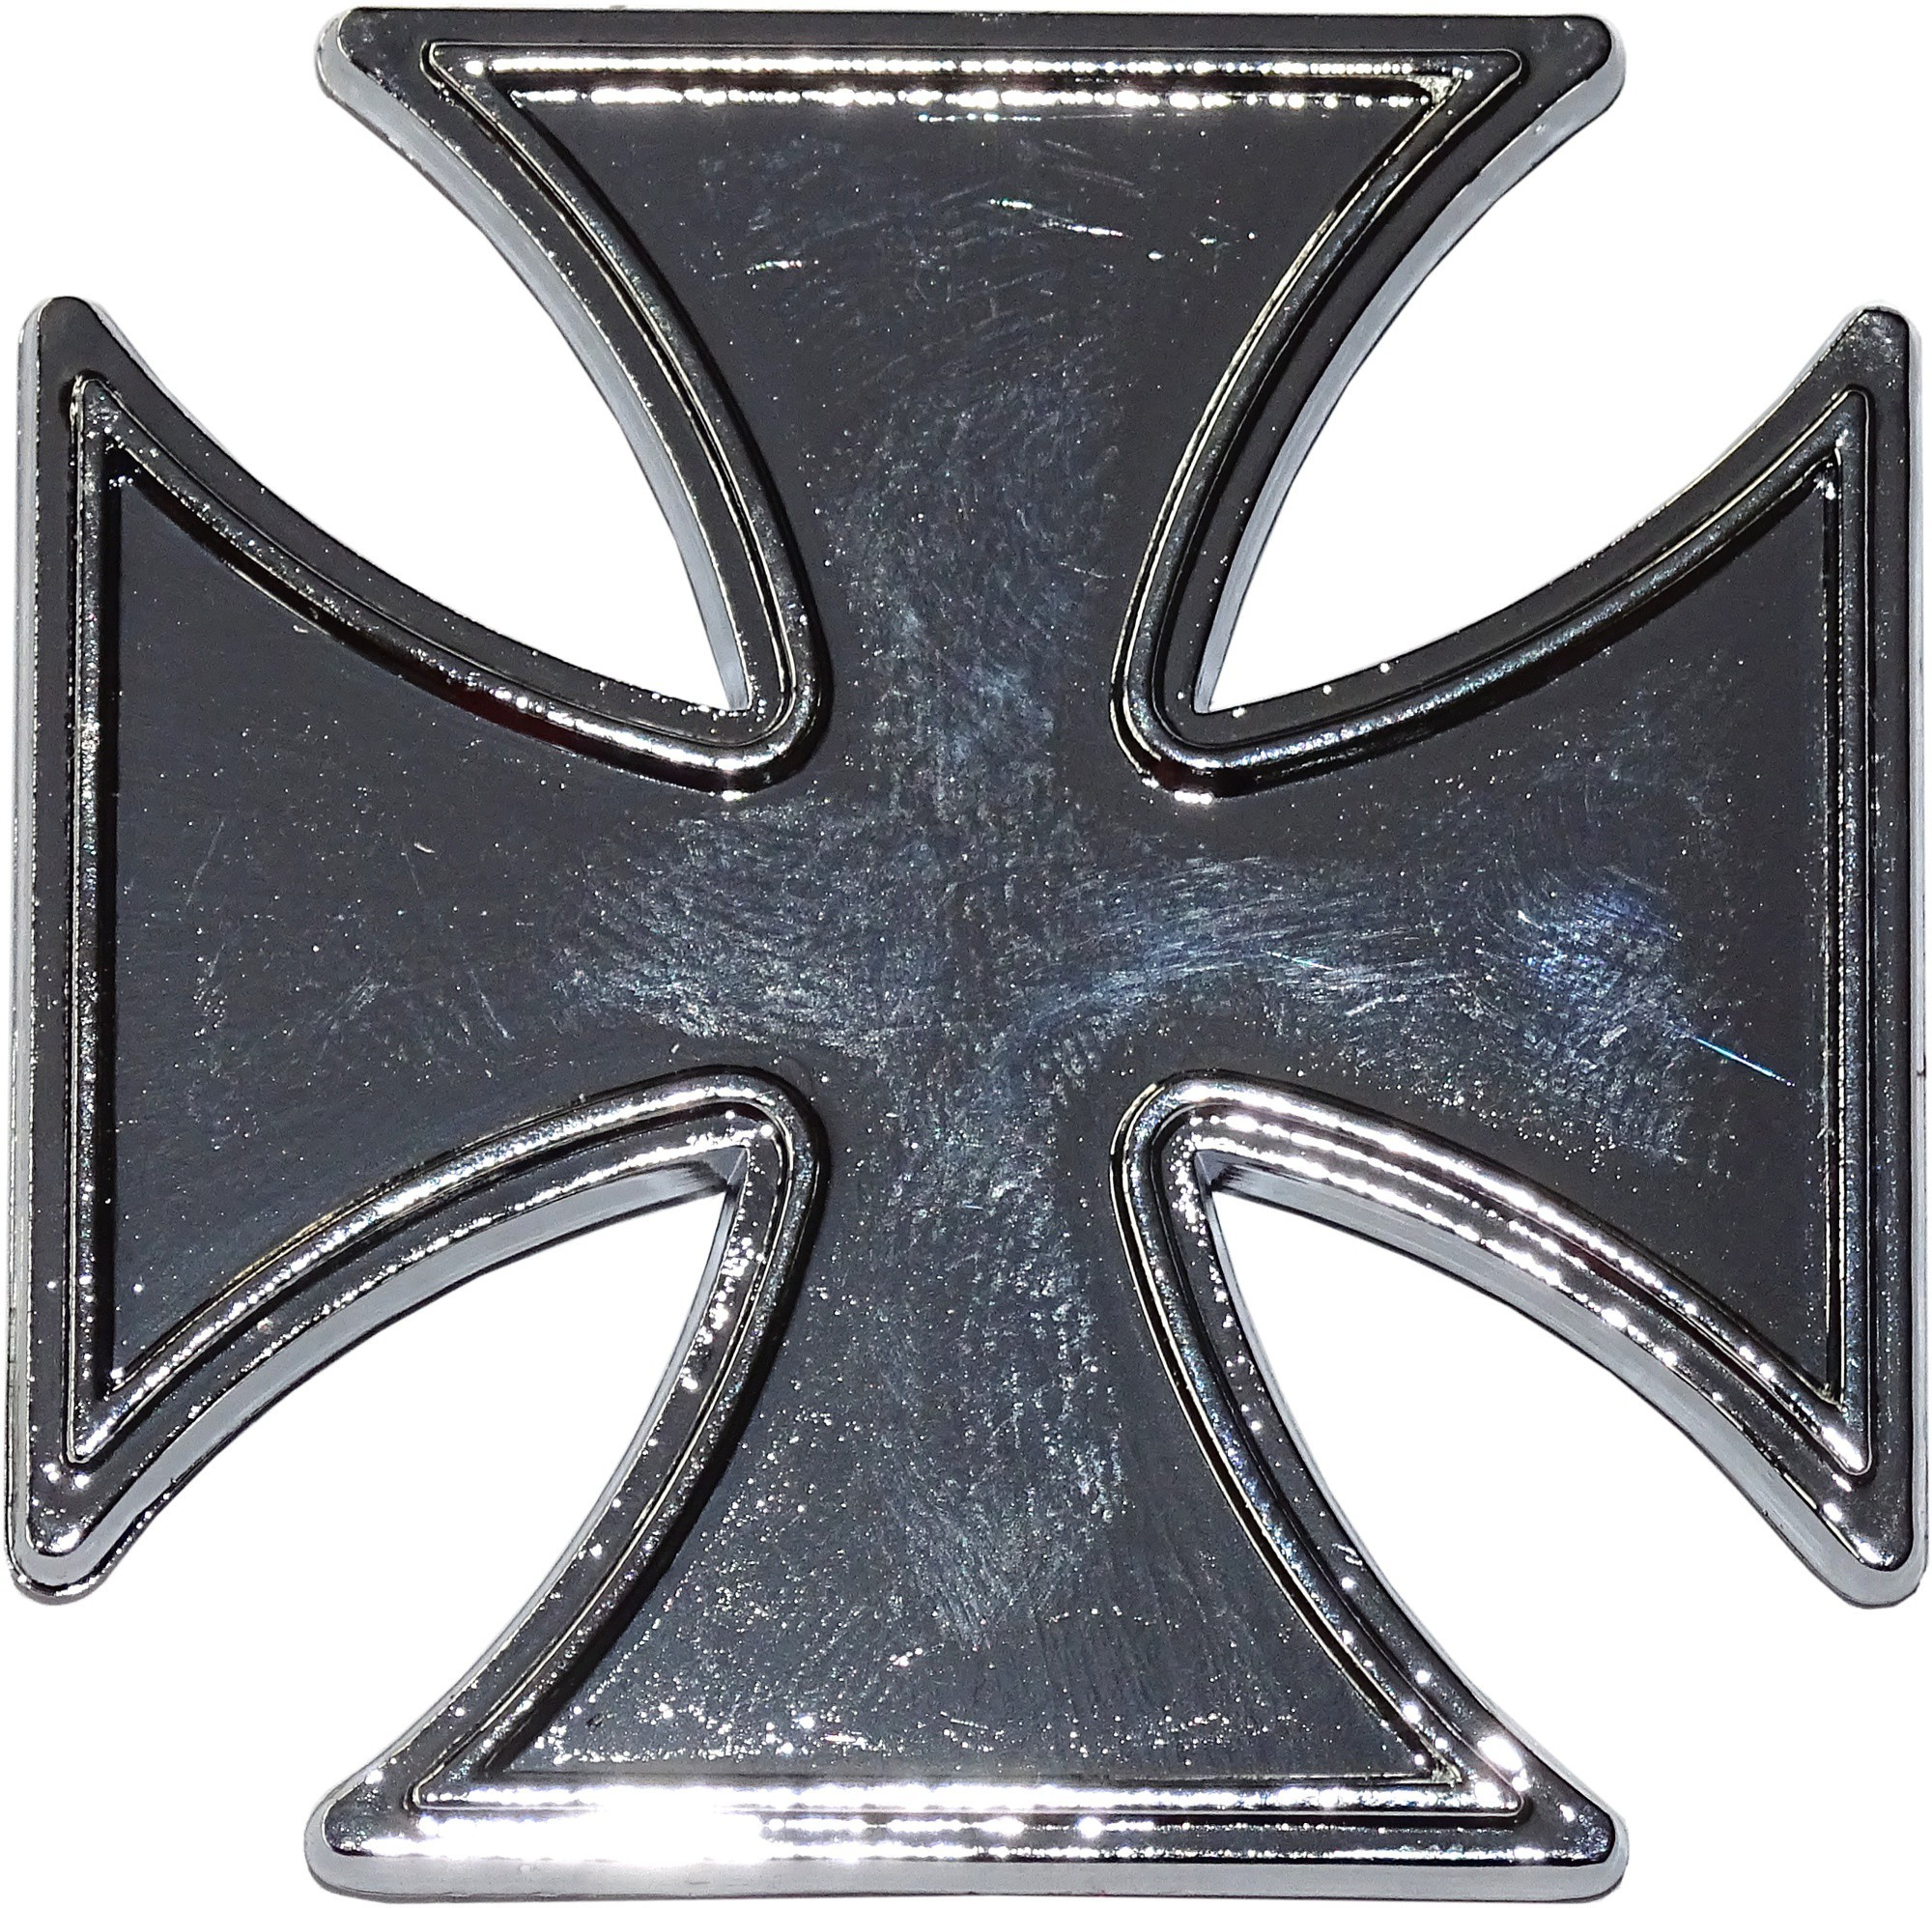 Relief-Chrome-Tattoo Iron Cross